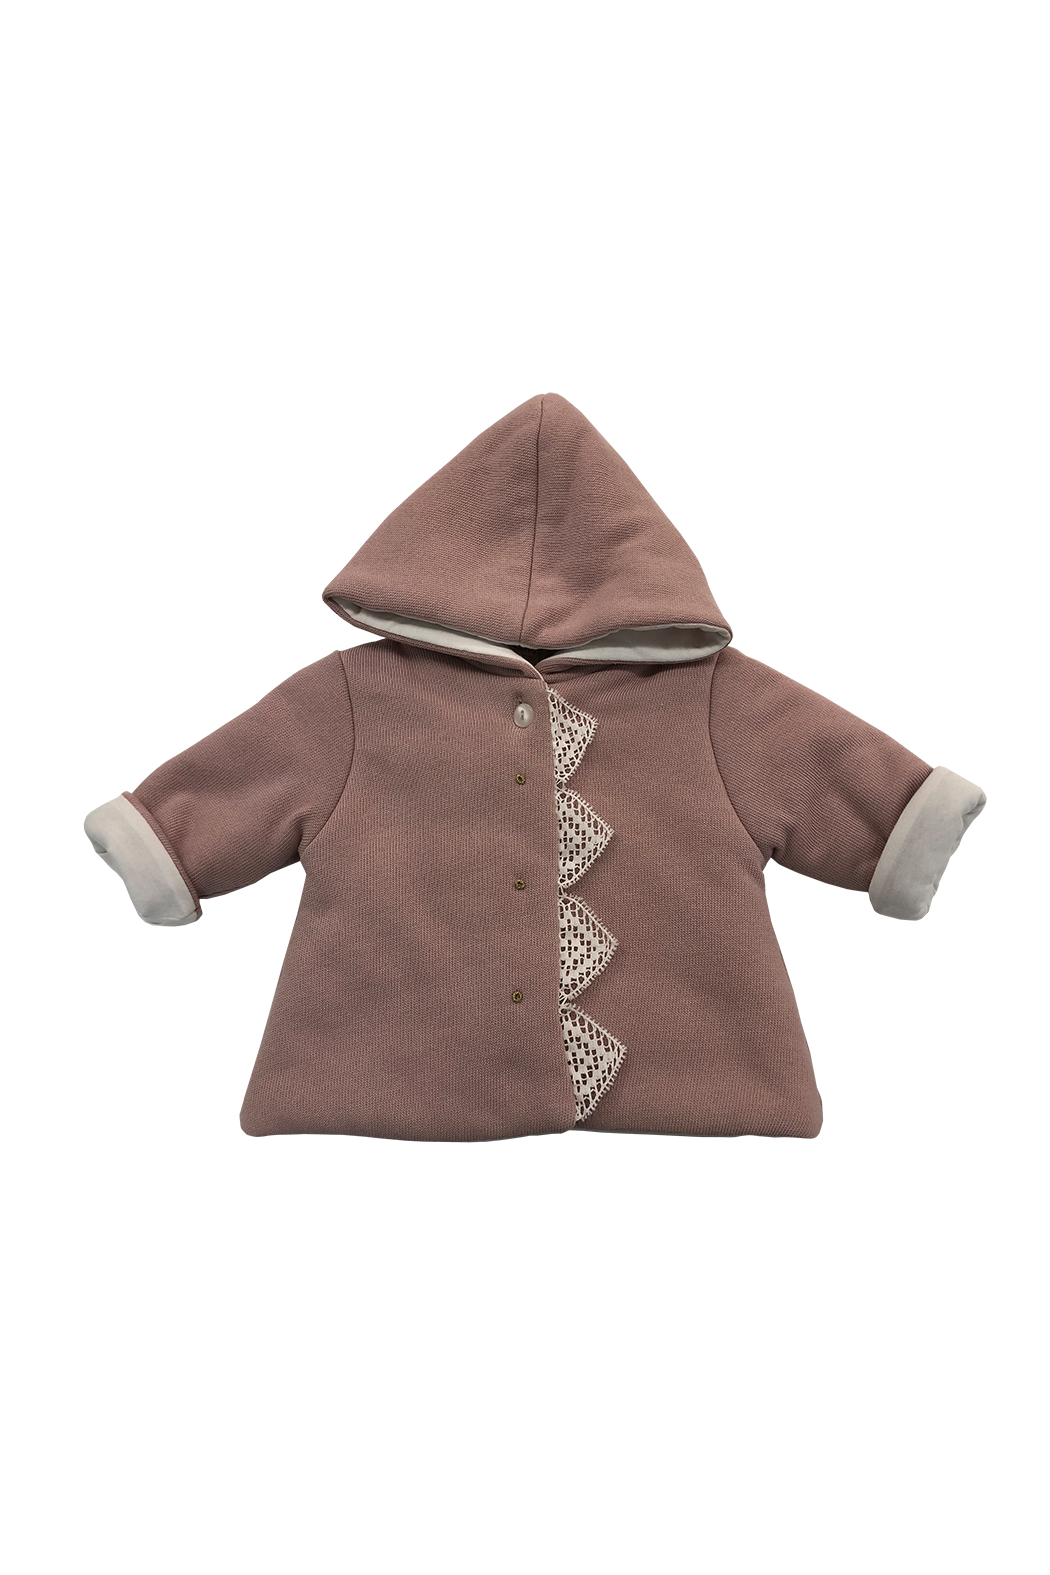 LA MASCOT  BABY HOODED JACKET WITH LACE EDGE BY ITALY - Main Image